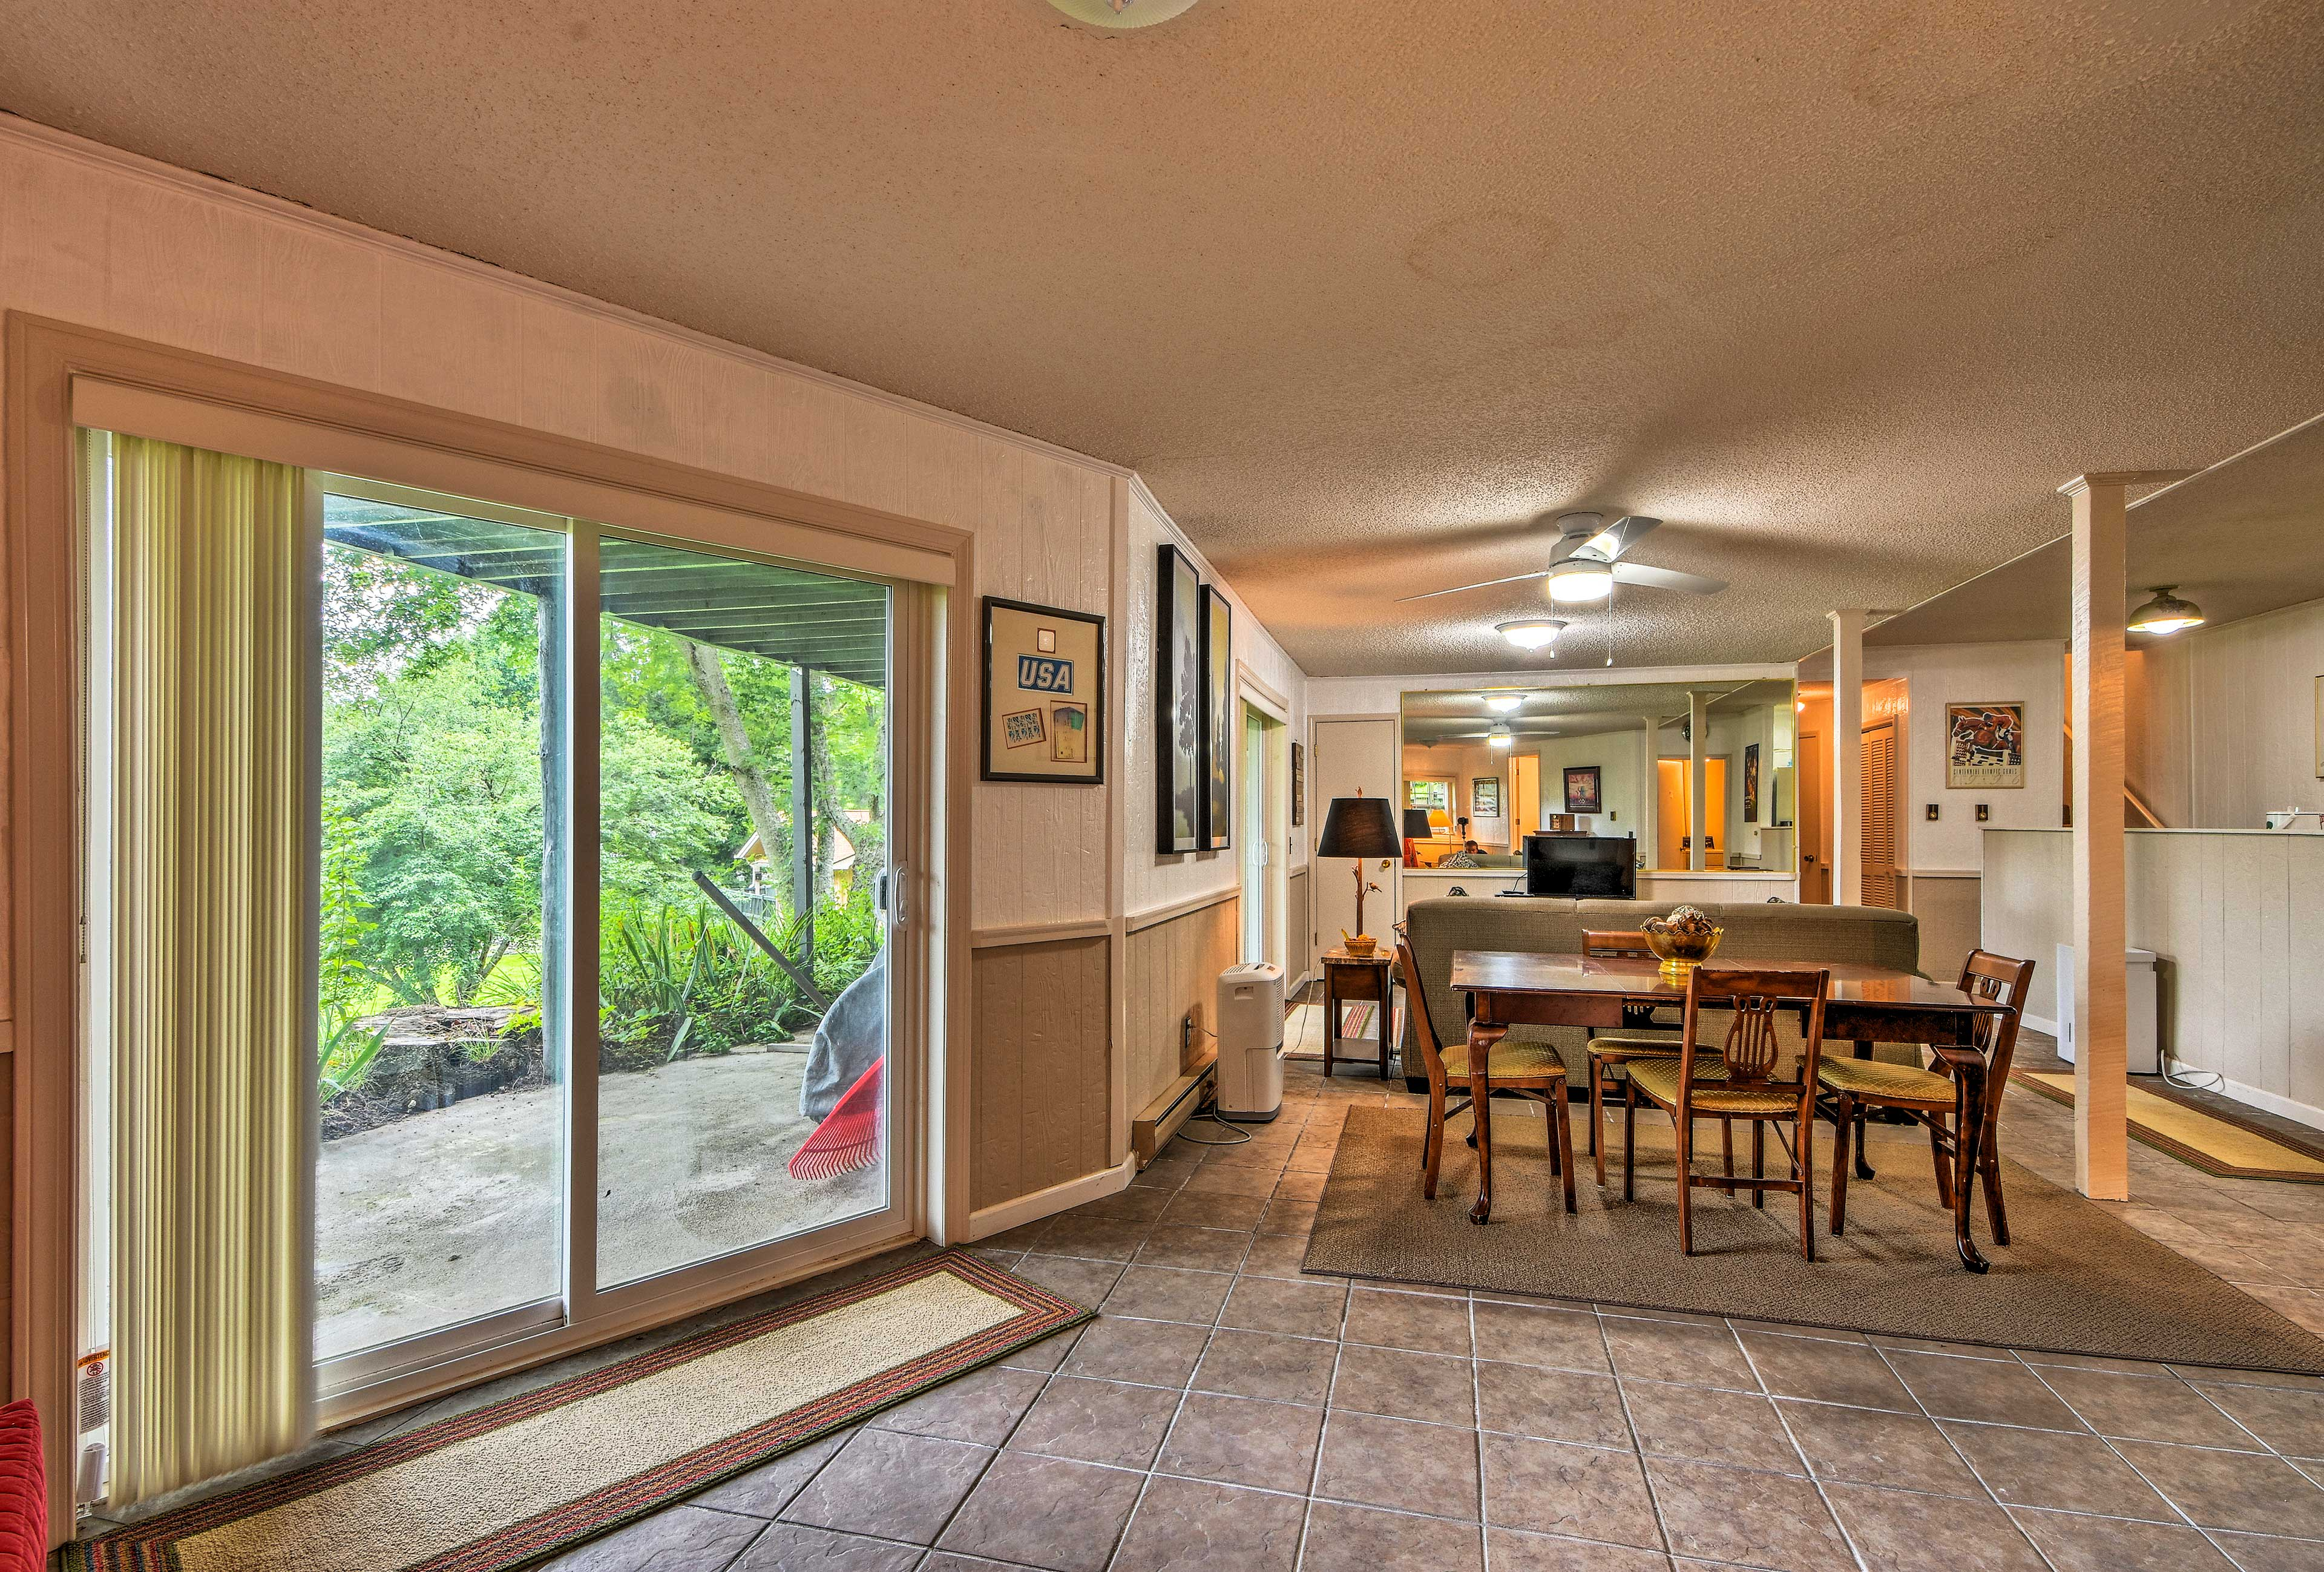 Hang out inside or open the sliding doors to step out onto the patio.